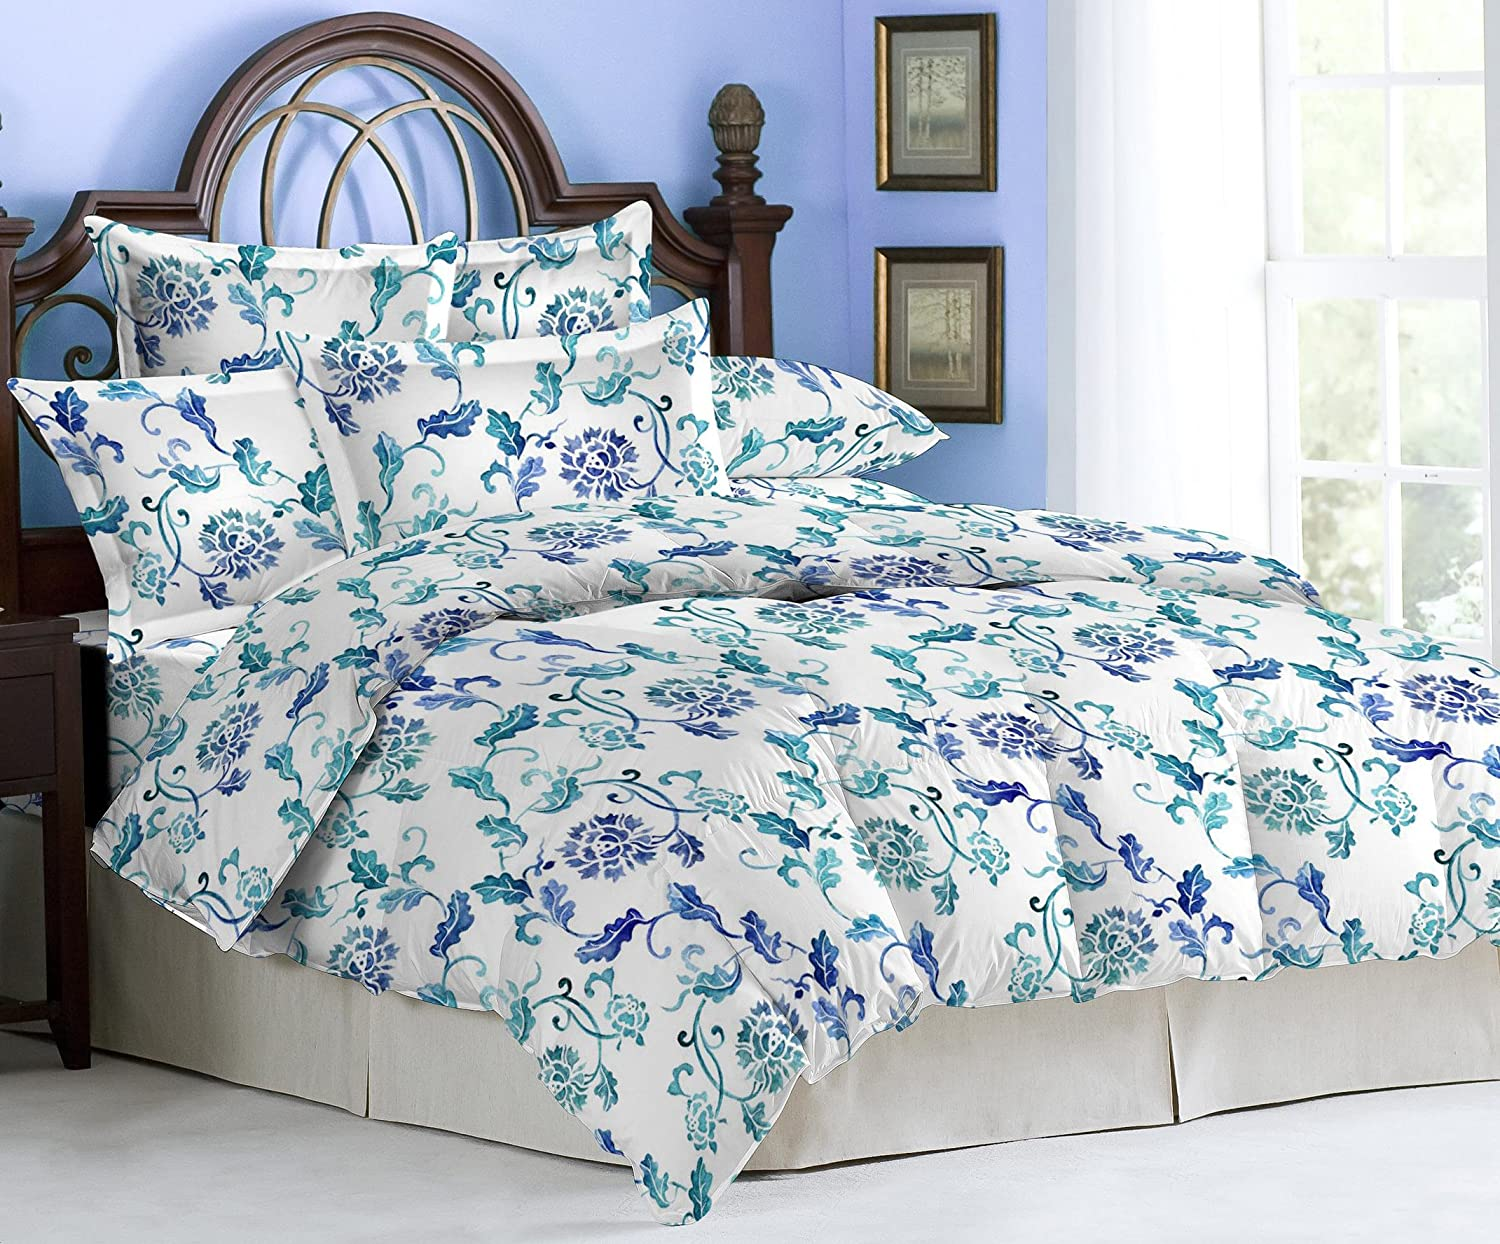 Marvelous Bombay Dyeing Coral Vine Double Bed Linen Set Worth Rs. 1999 At Rs. 999